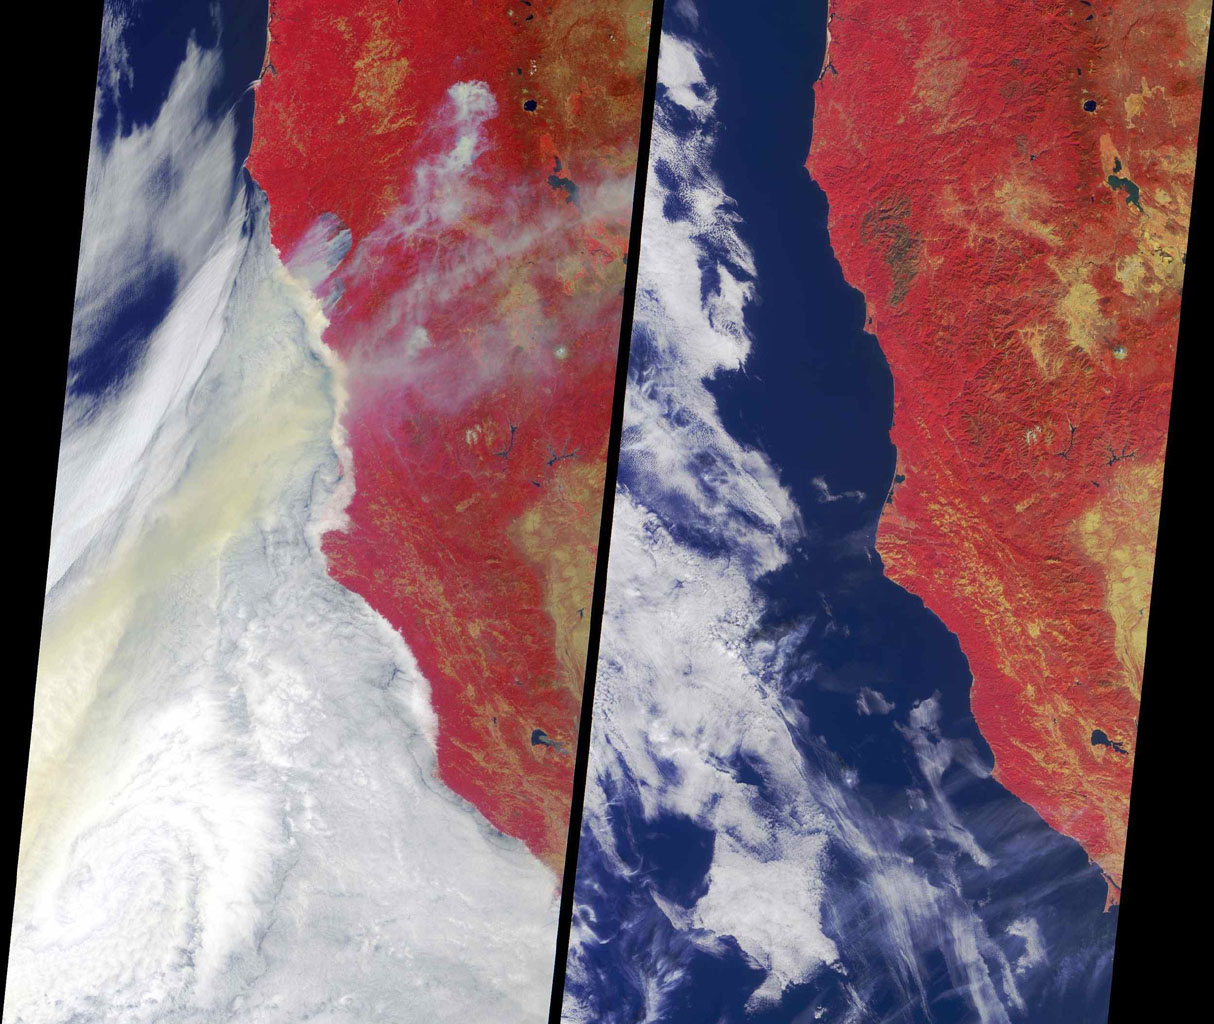 Ignited by lightning strikes during a record-breaking heat wave, the Biscuit Fire became Oregon's largest wildfire of the past century. NASA's Terra spacecraft  acquired these image between mid July and early September 2002.